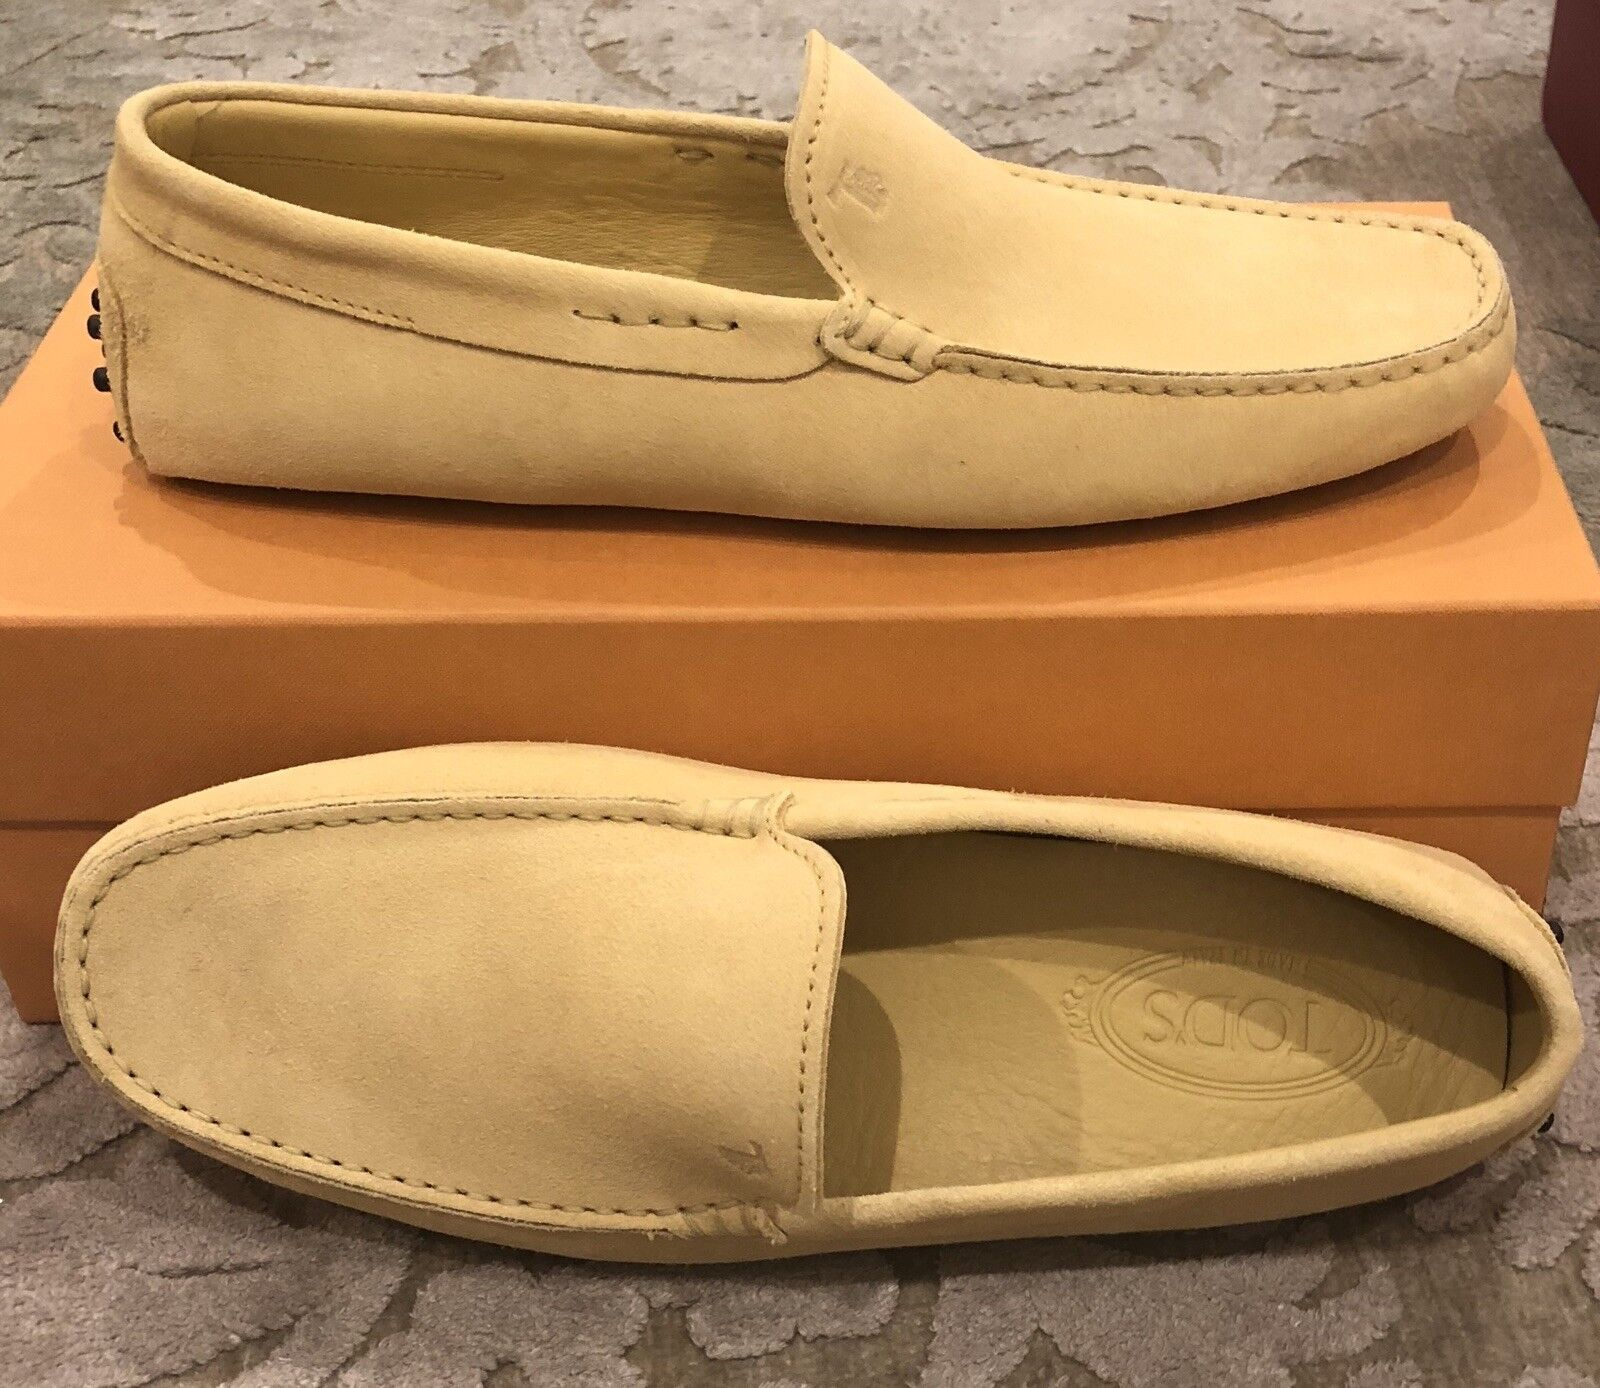 New Tods Mens Light Yellow Gommini Loafer shoes Size 8 US 7 EU